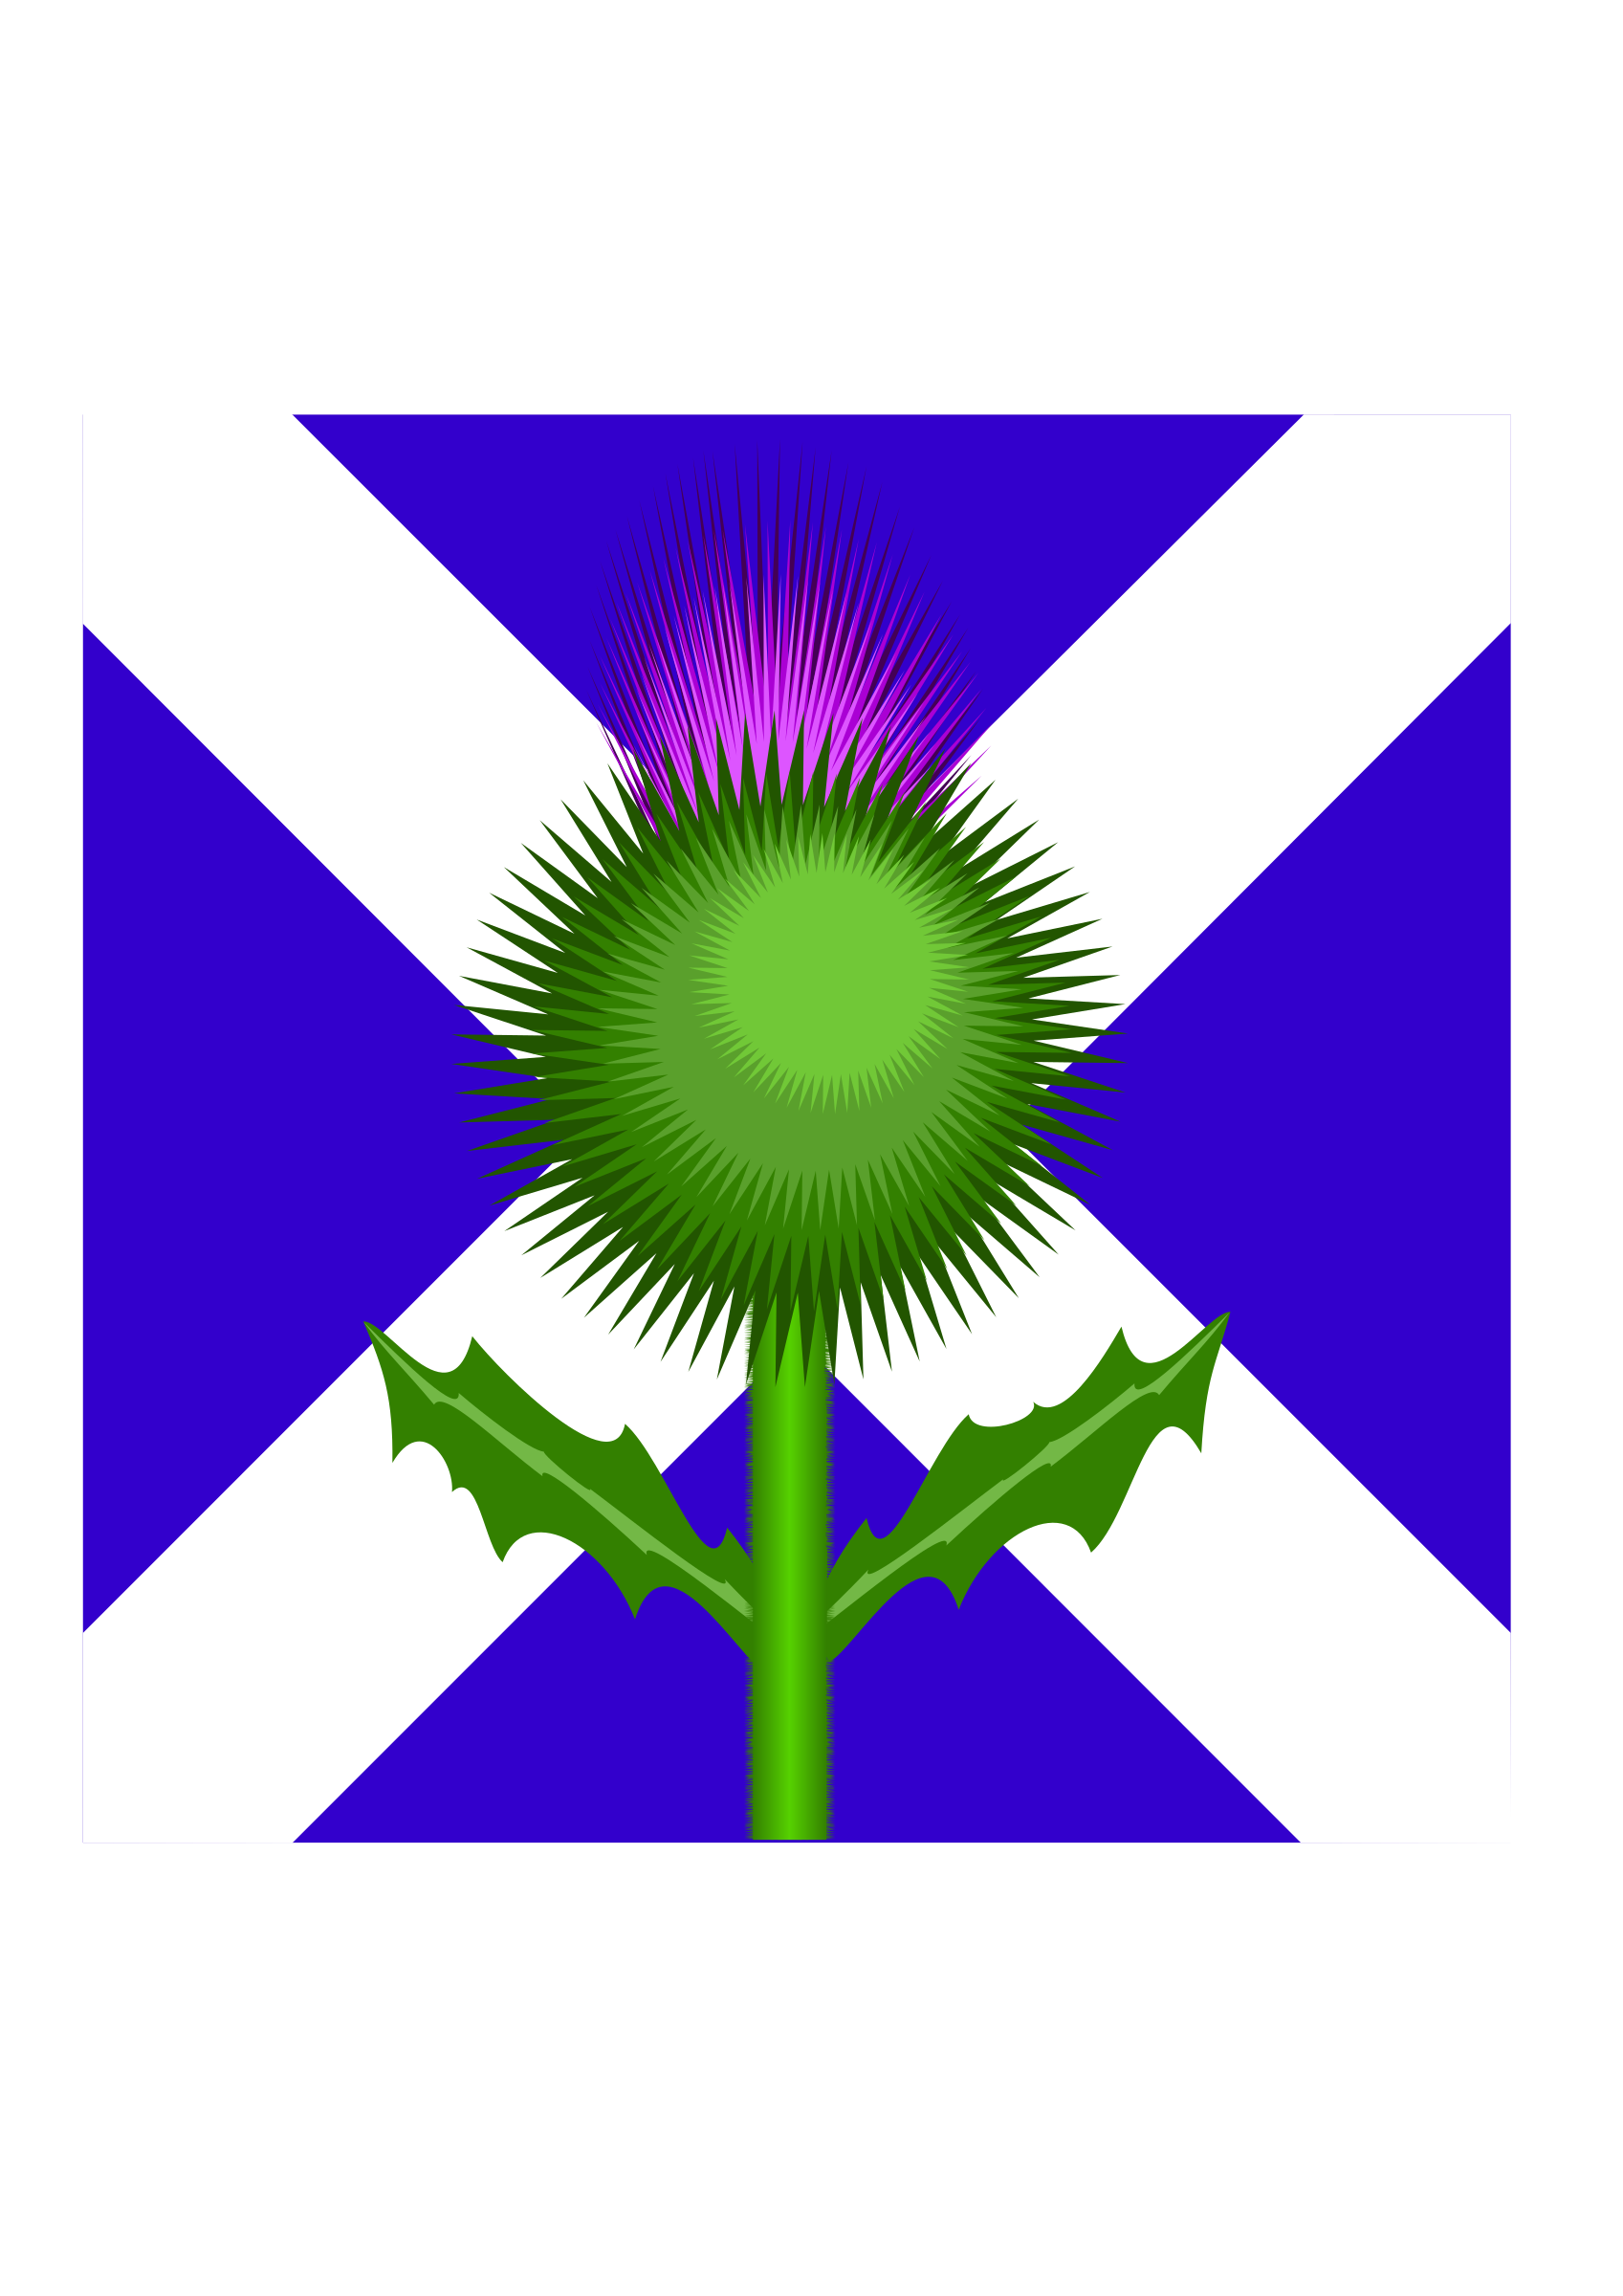 Scottish Thistle and flag by kevie